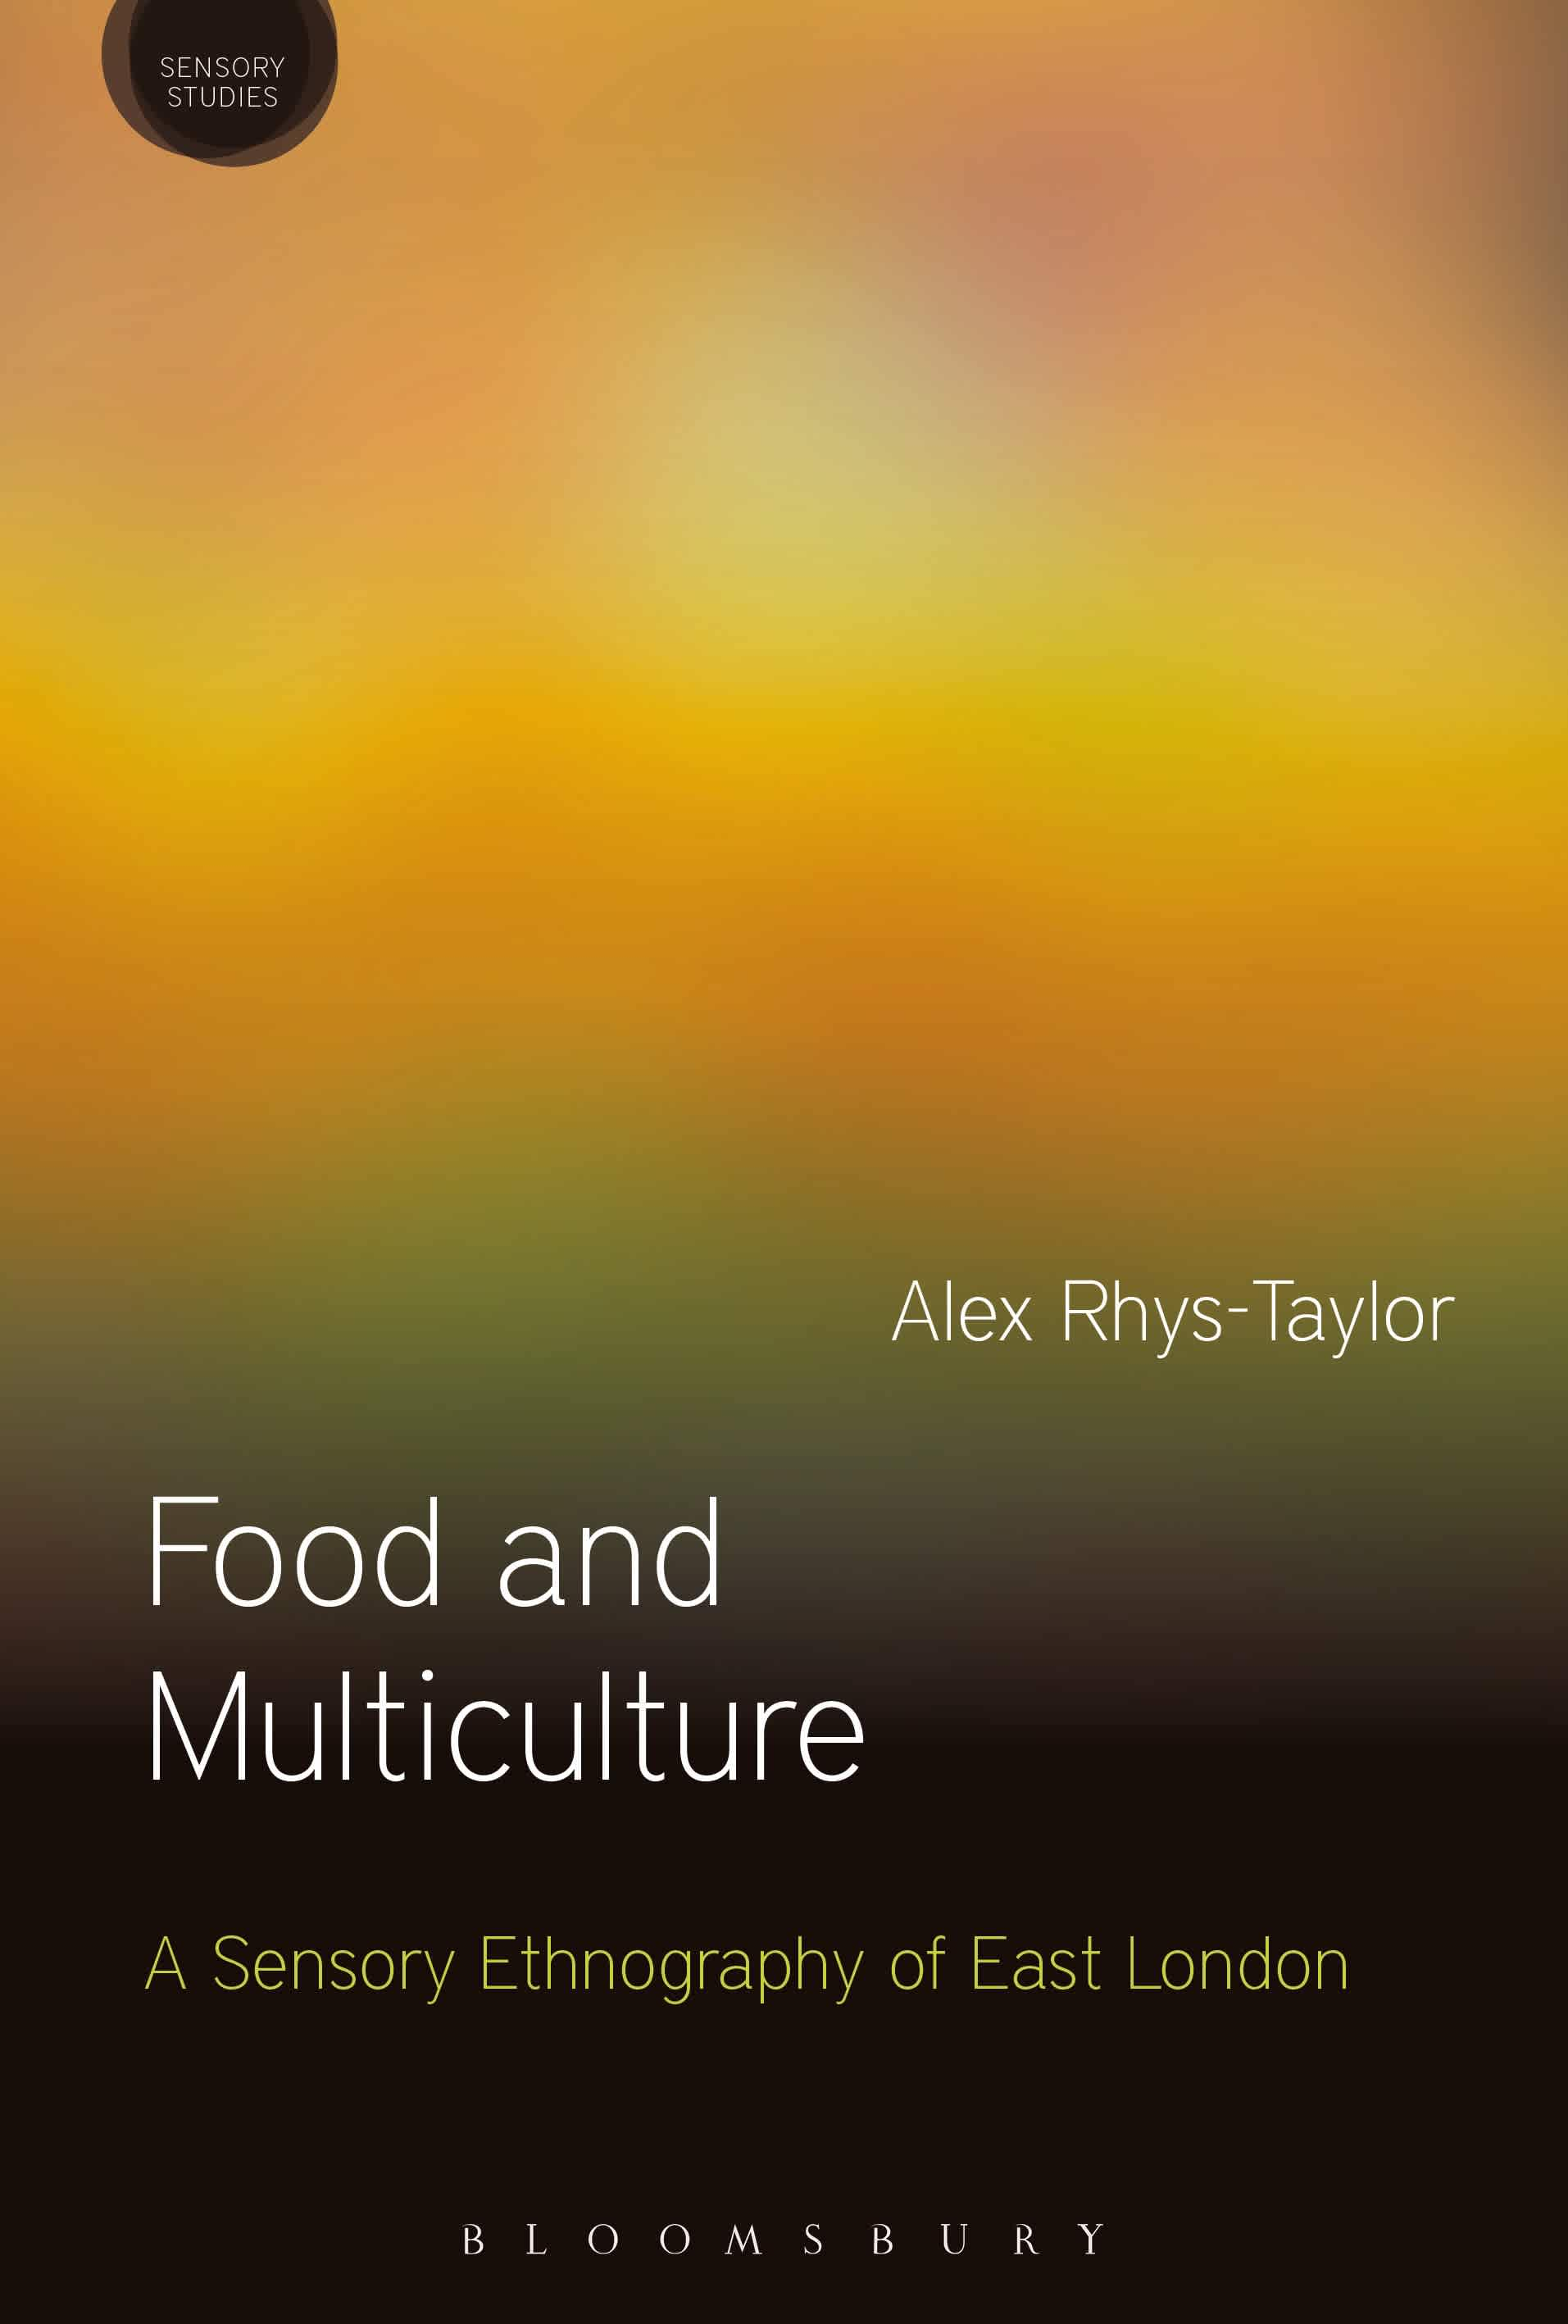 Food and Multiculture